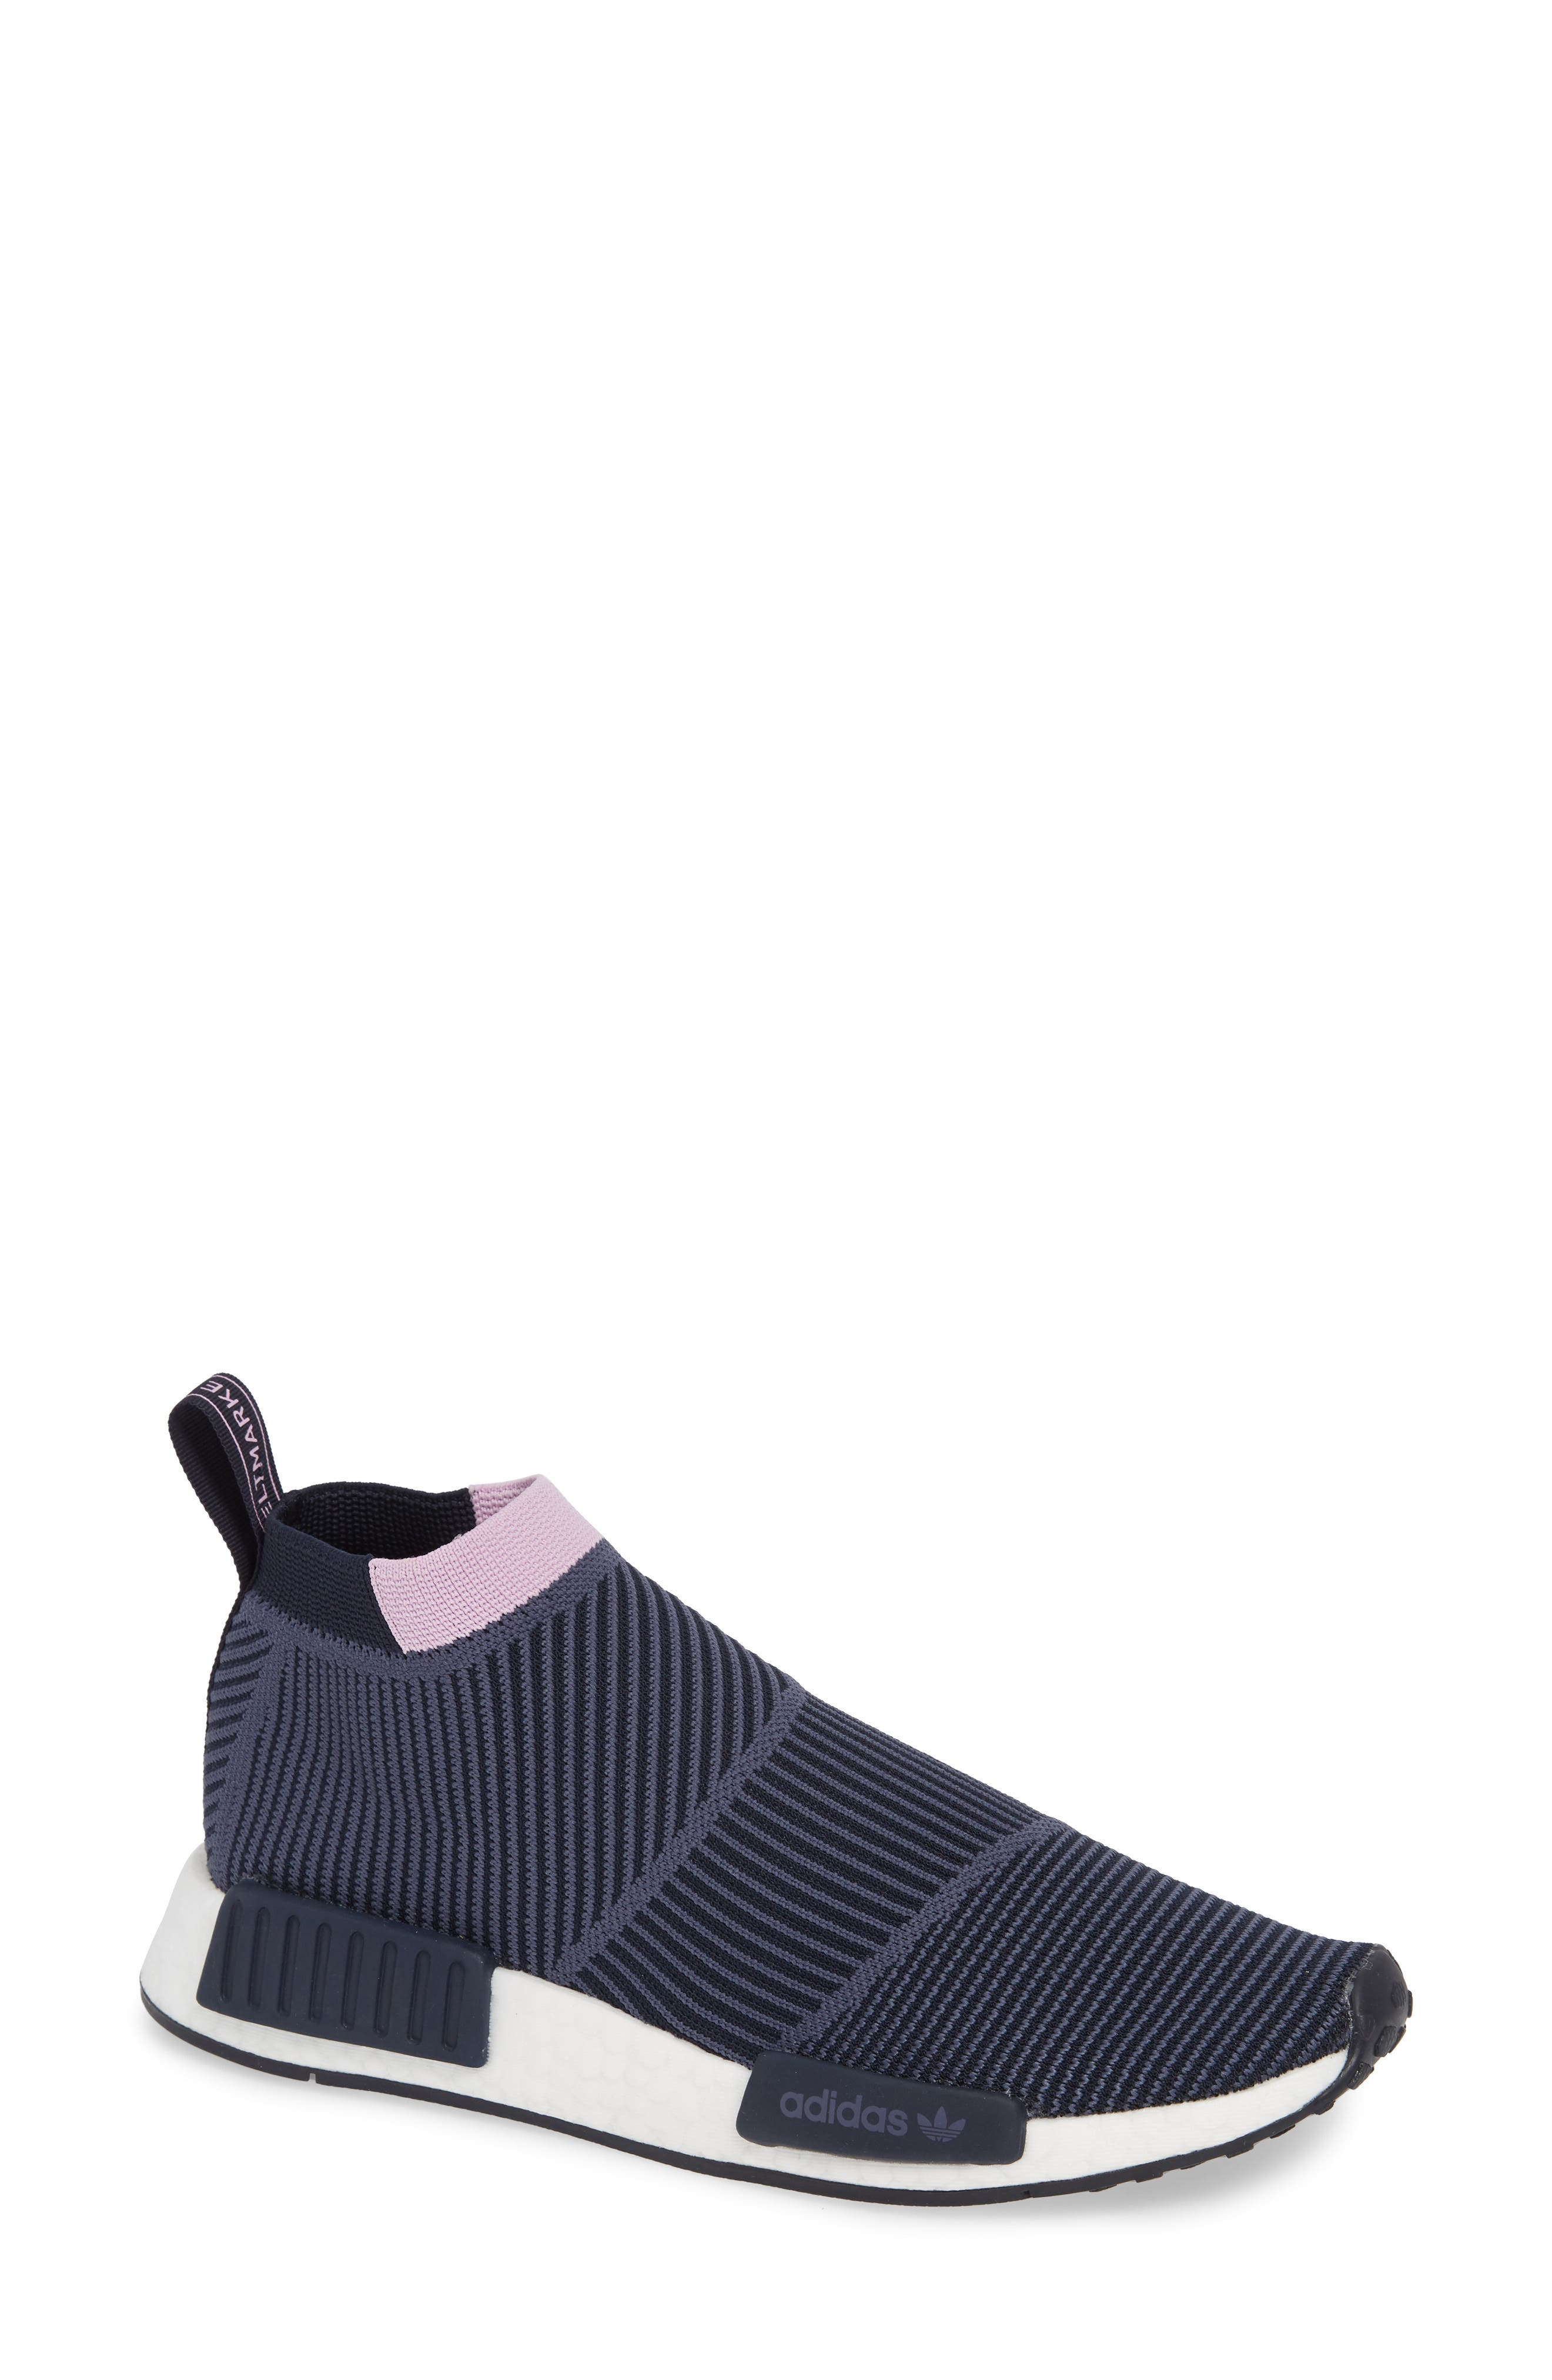 NMD_CS1 Primeknit Sneaker,                         Main,                         color, LEGEND INK/ CLEAR LILAC